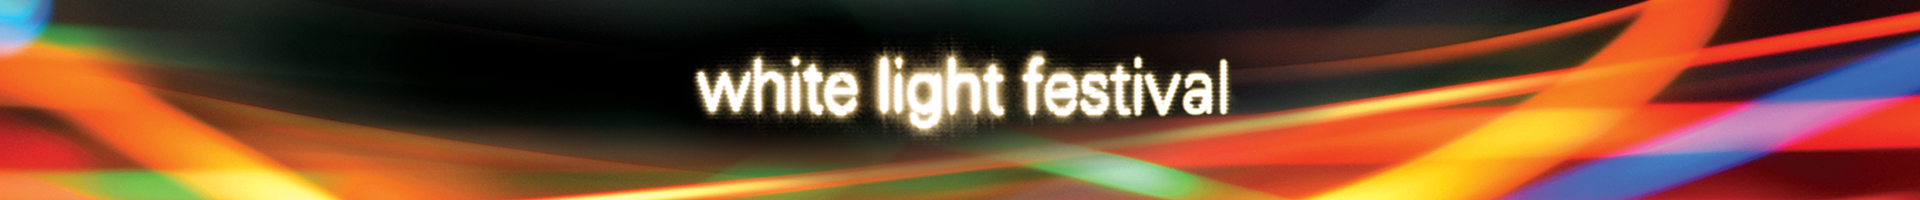 white-light-festival